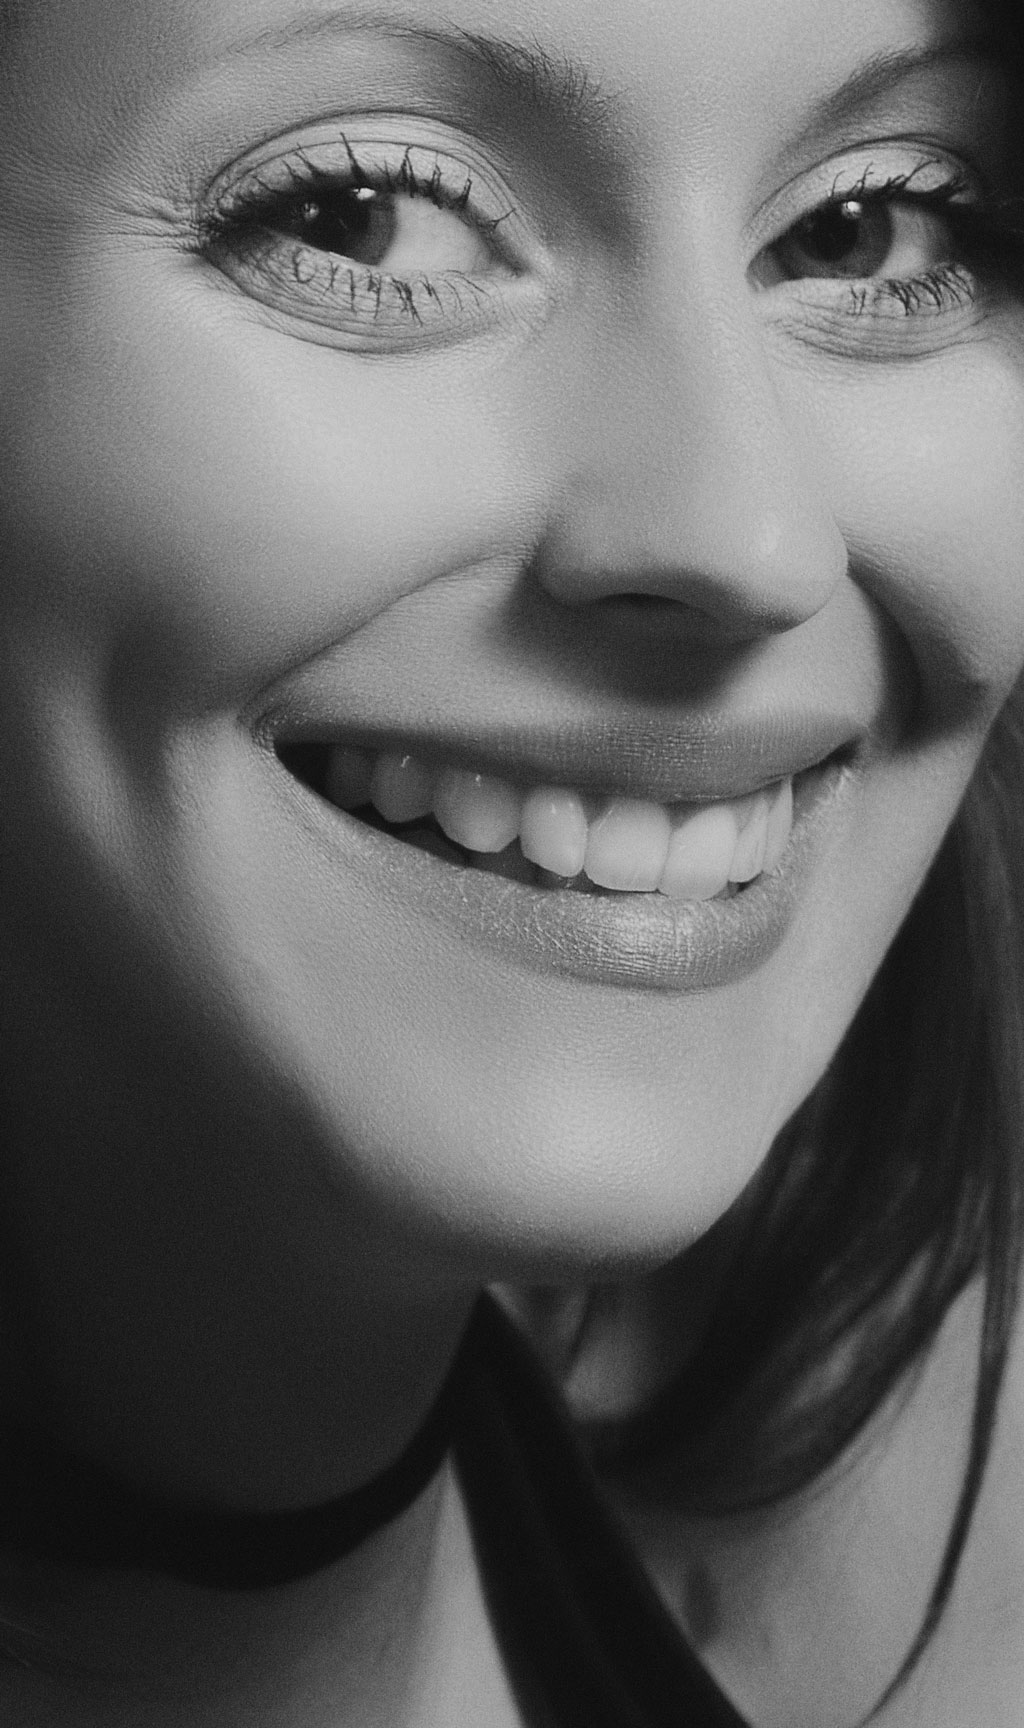 woman smiling broadly